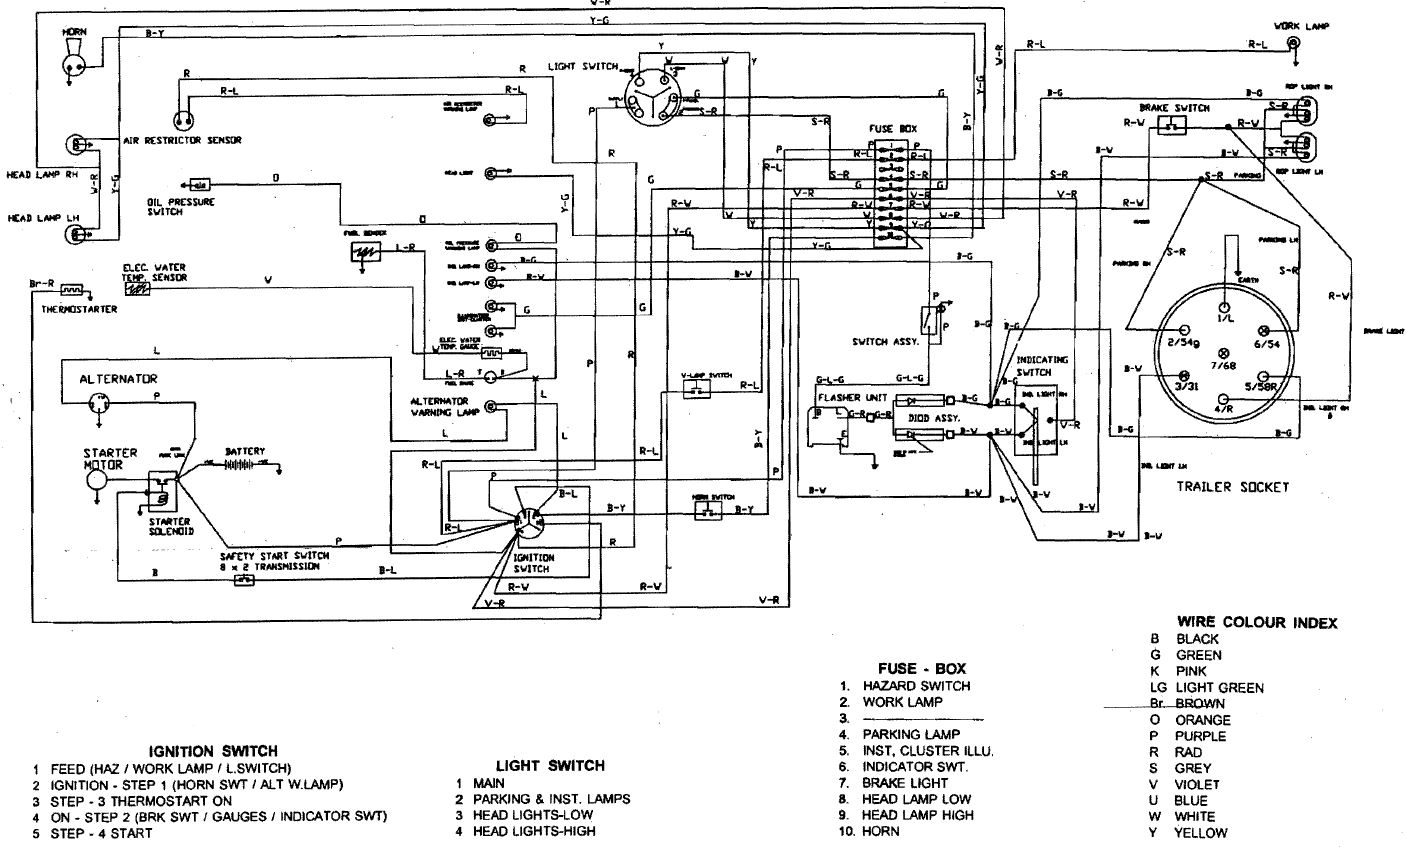 For 420 Garden Tractor Wiring | Wiring Diagram John Deere Garden Tractor Wiring Diagram on john deere pto diagram, john deere lawn mower parts diagram, john deere x320 drive belt diagram, craftsman riding lawn mower wiring diagram, john deere 4020 hydraulic pump diagram, john deere 318 engine diagram,